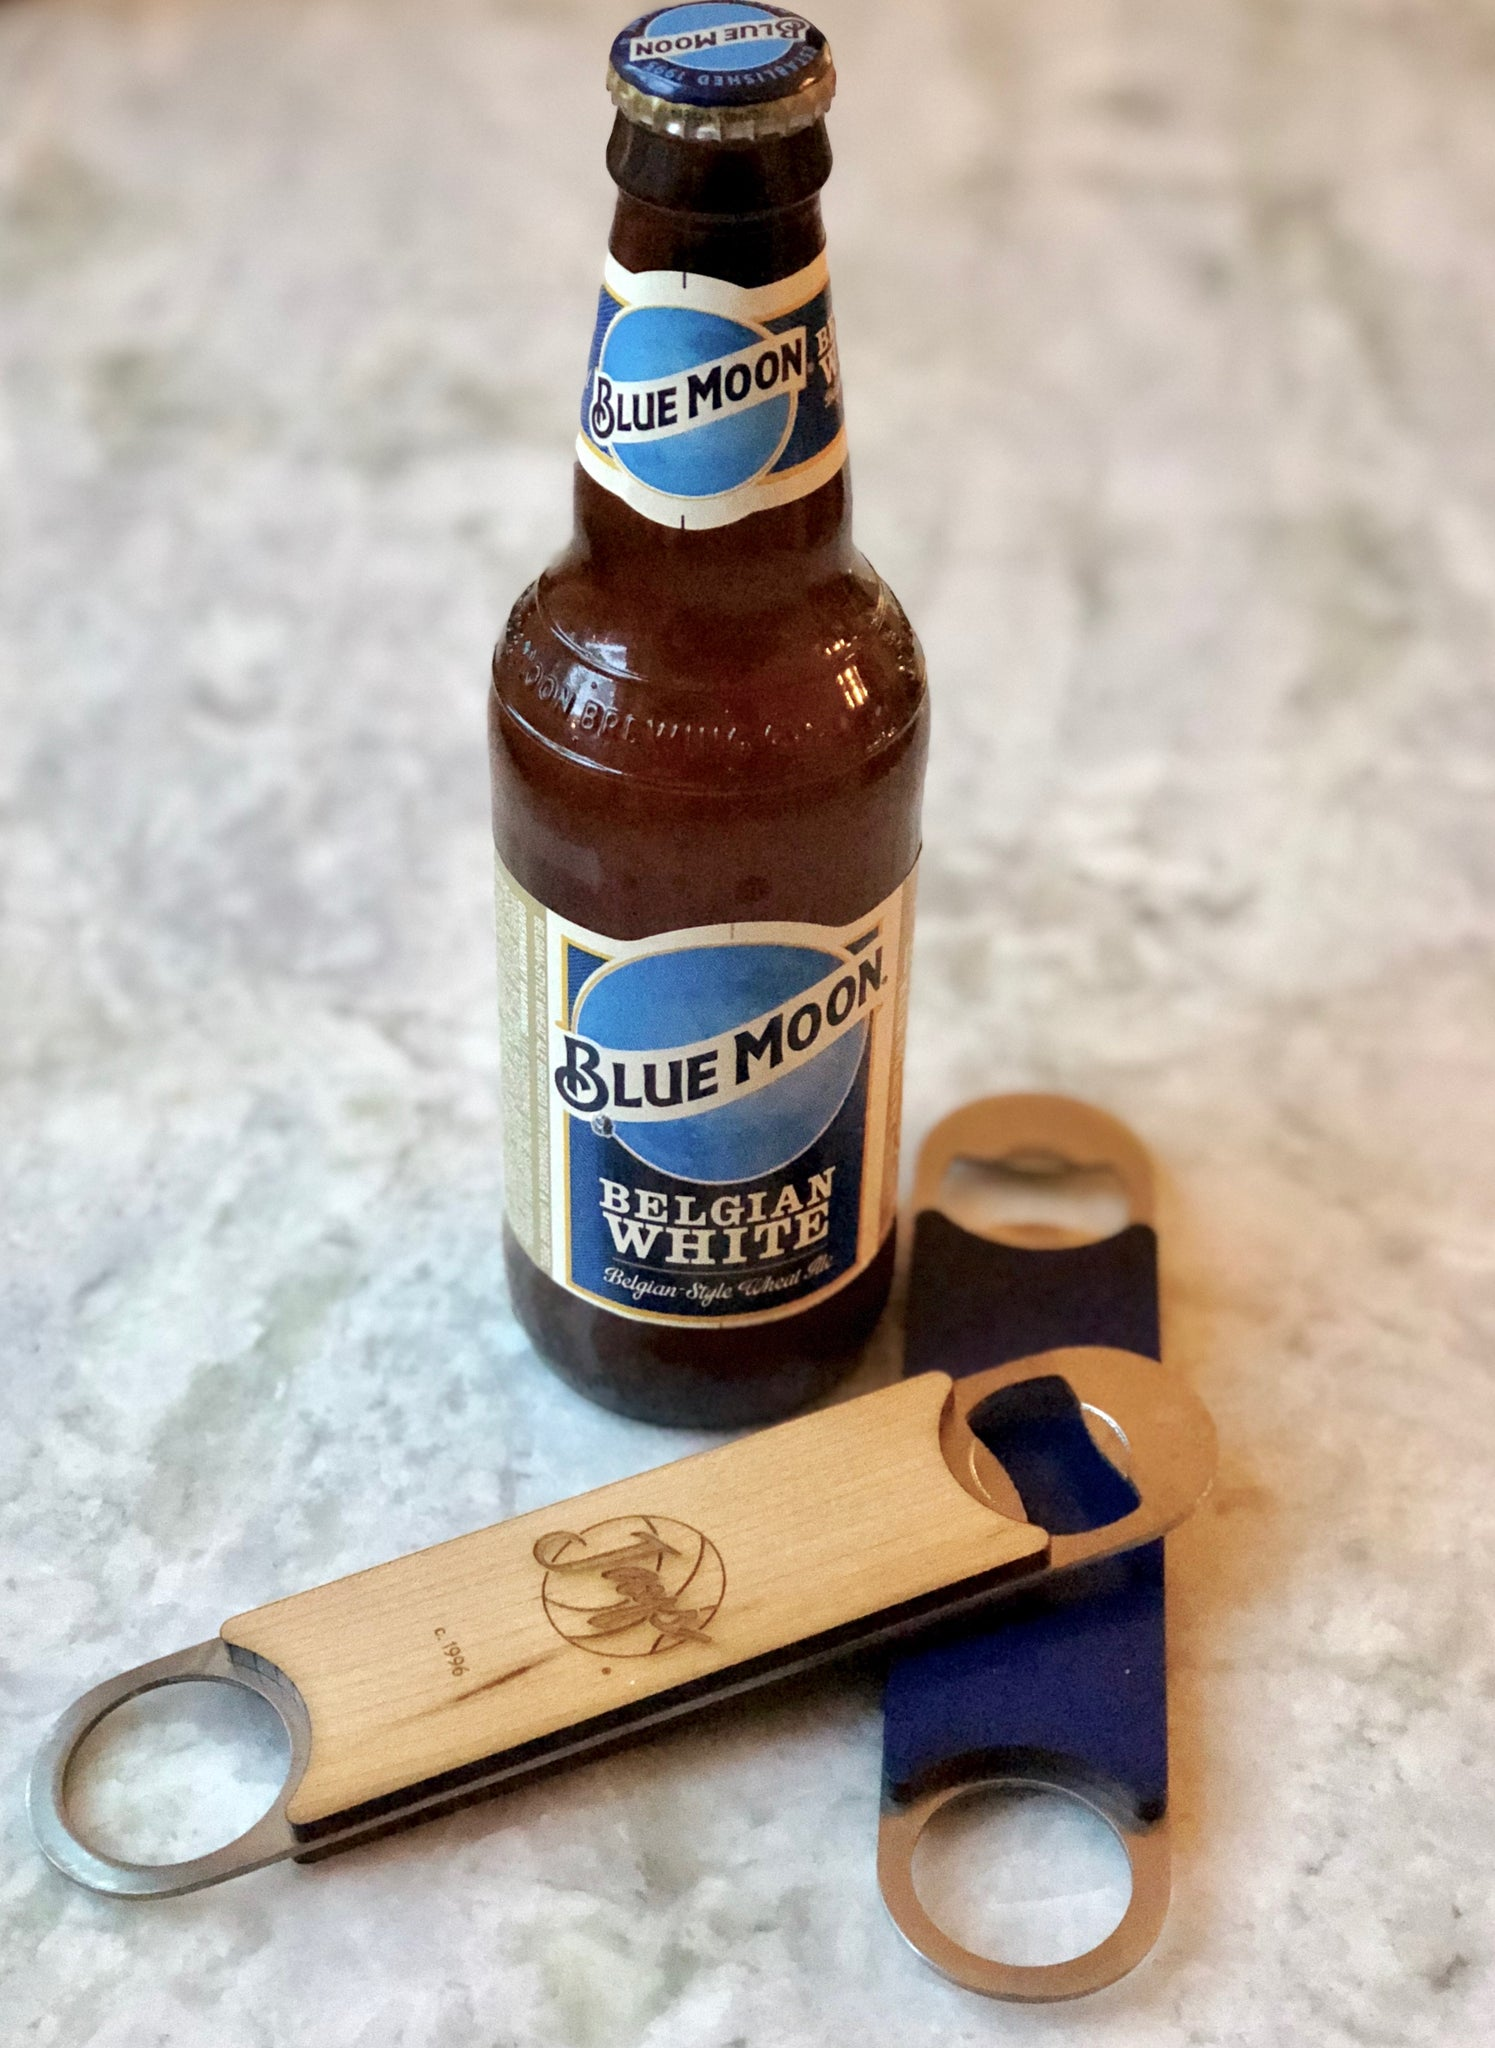 Creighton Gym Floor Bottle Opener